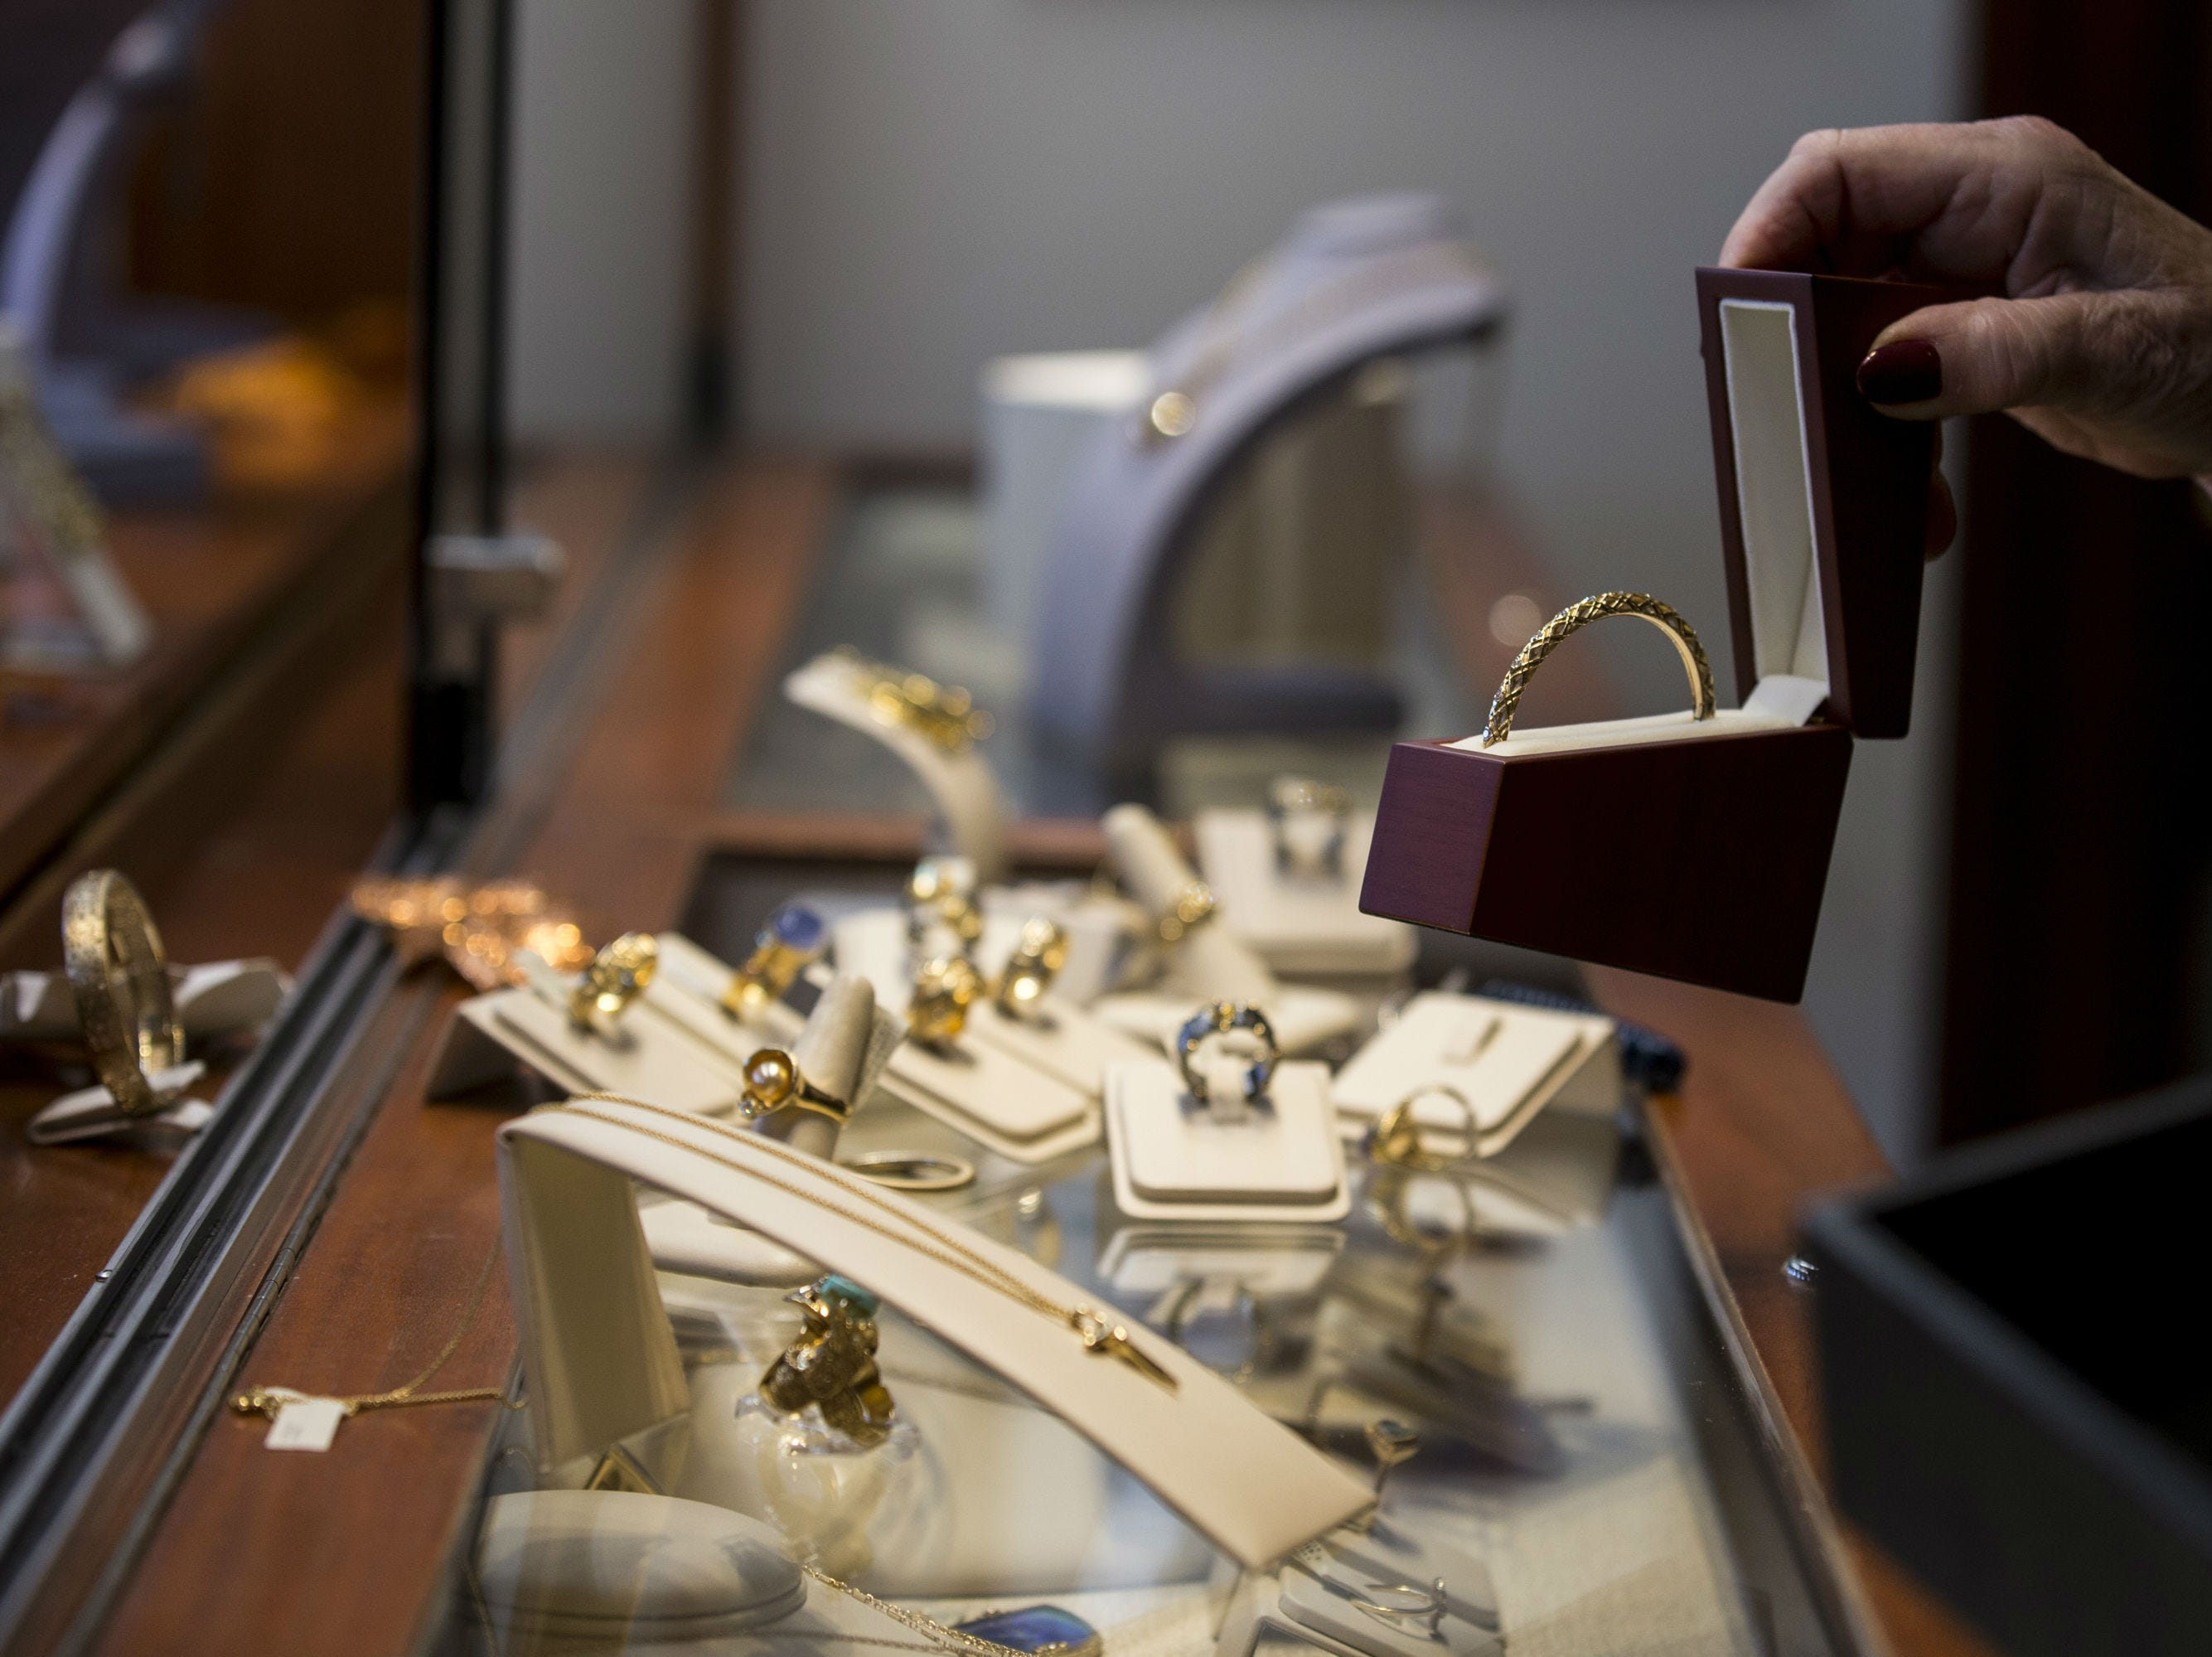 Vicky Boyce moves jewelry in a display on Nov. 19, 2018, at French Designer Jeweler in Scottsdale.